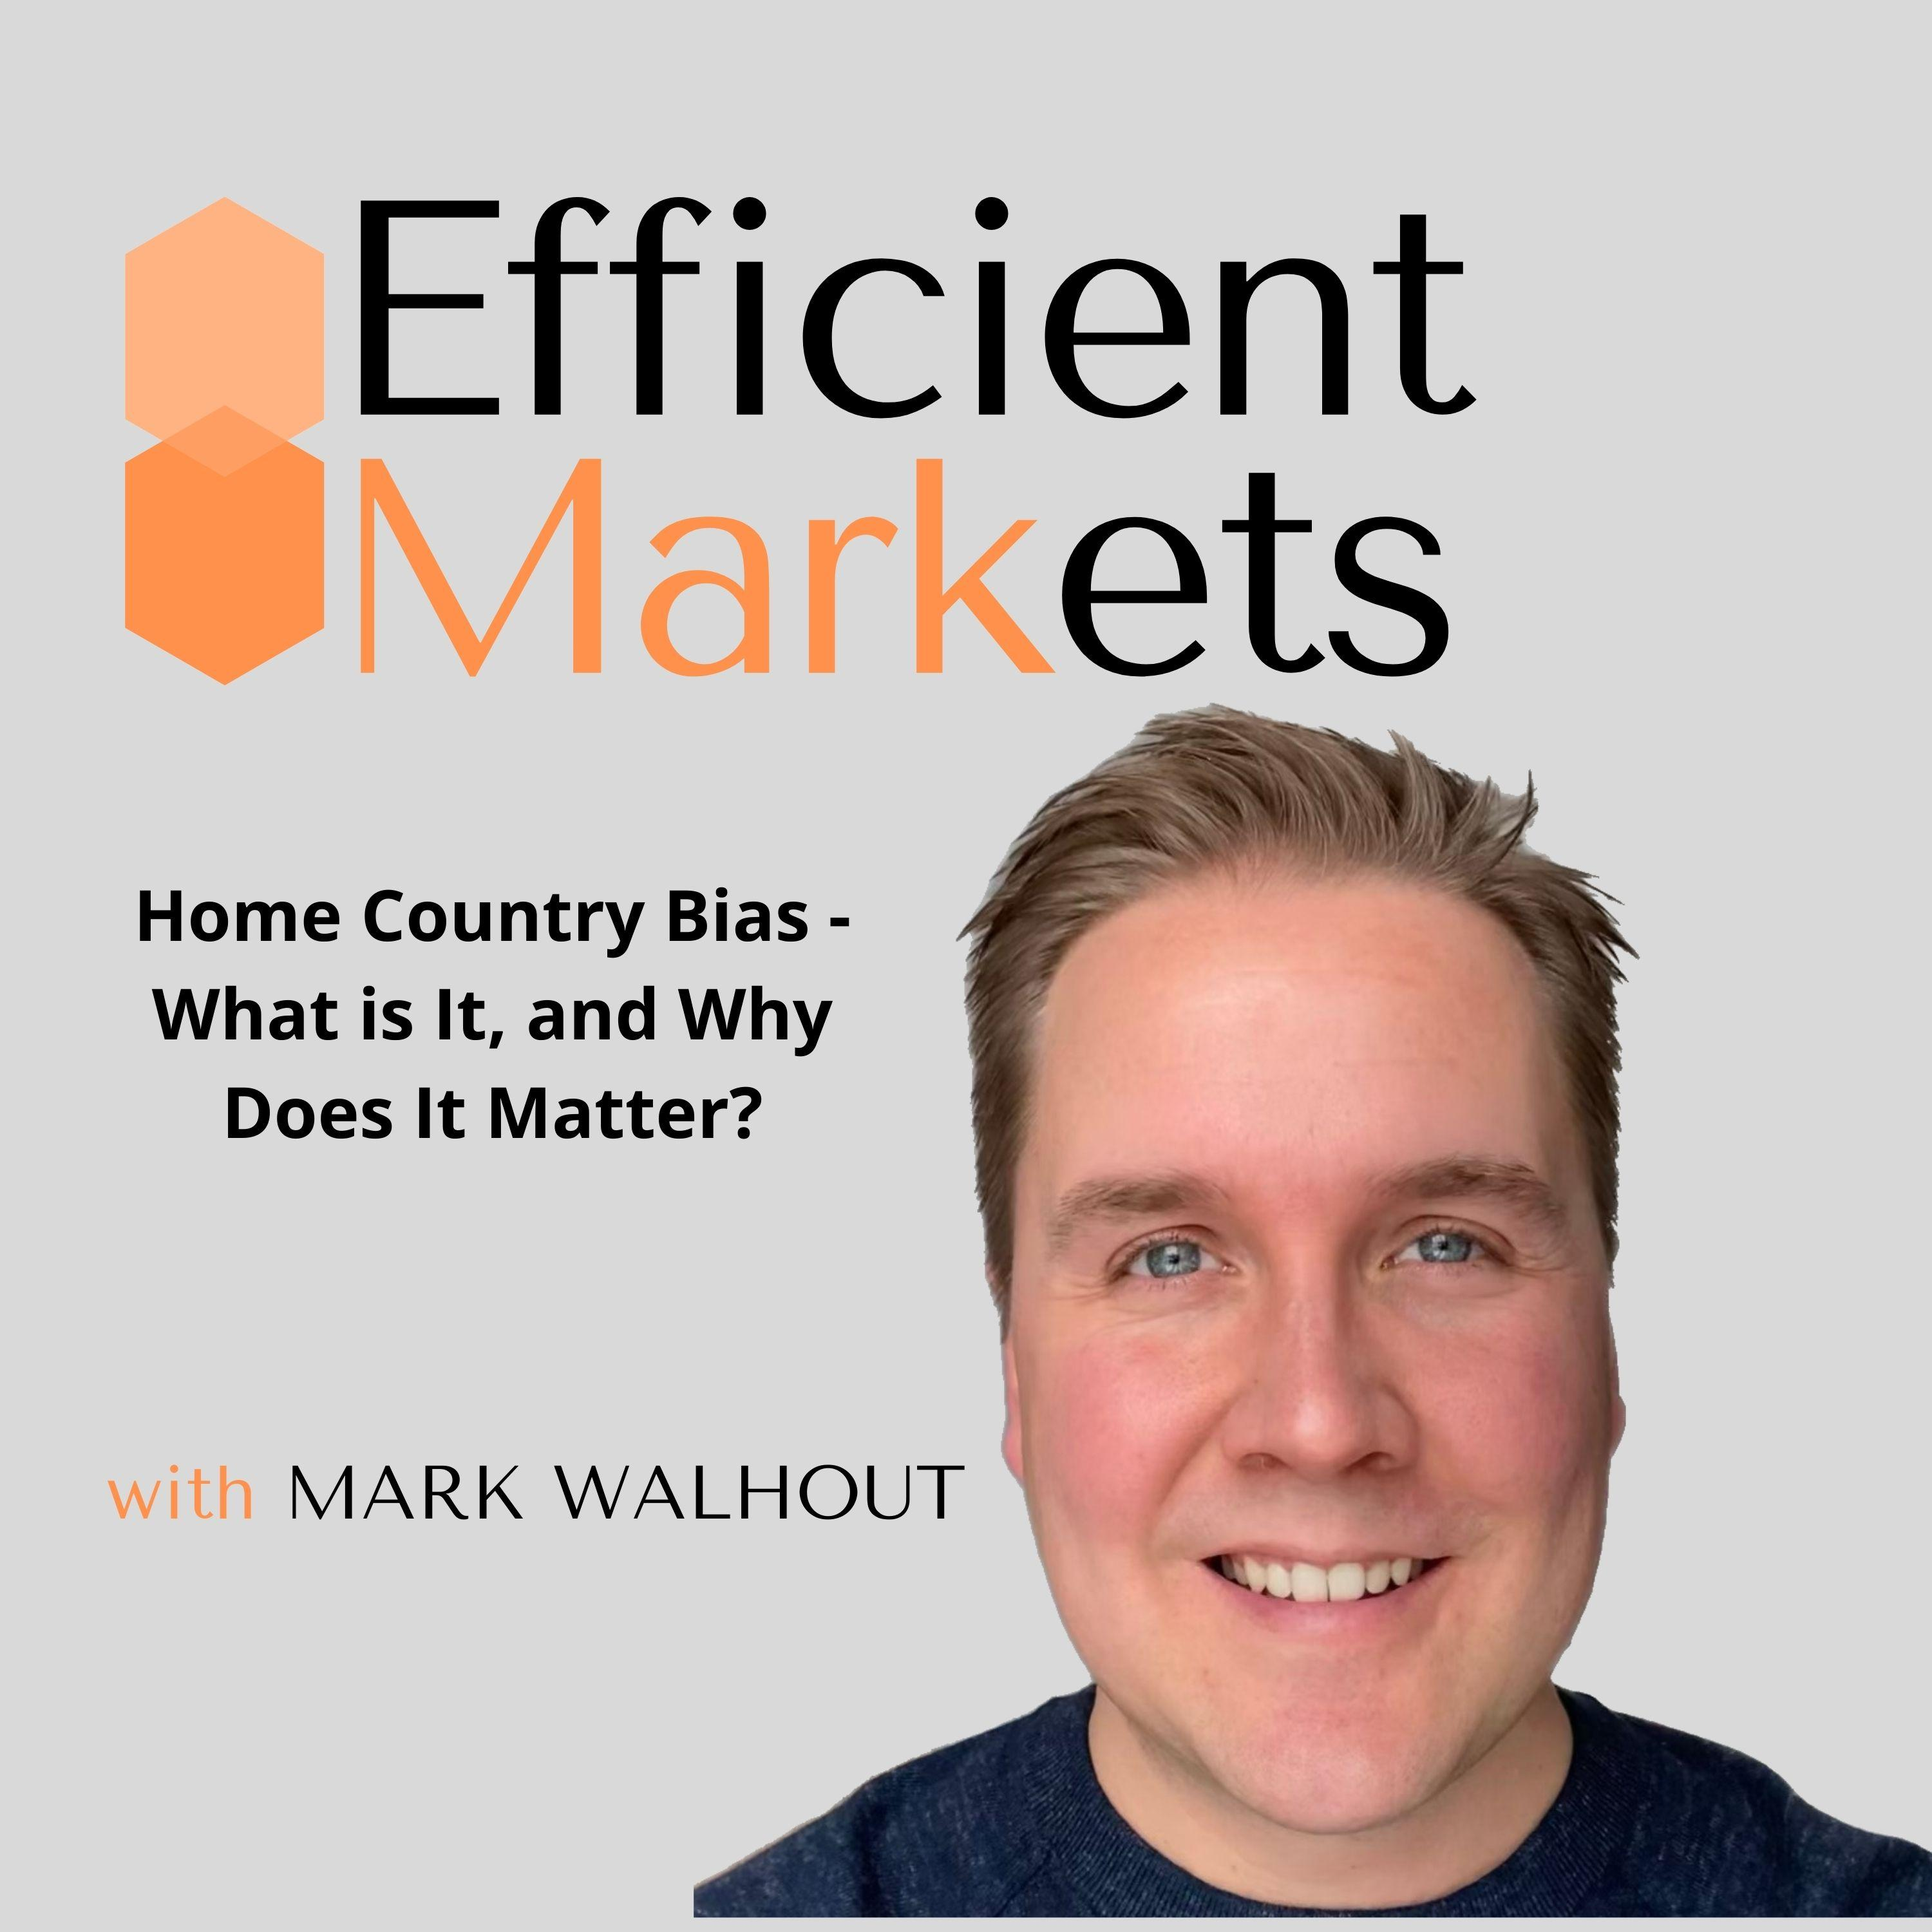 Home Country Bias - What Is It and Why Does It Matter? Thumbnail